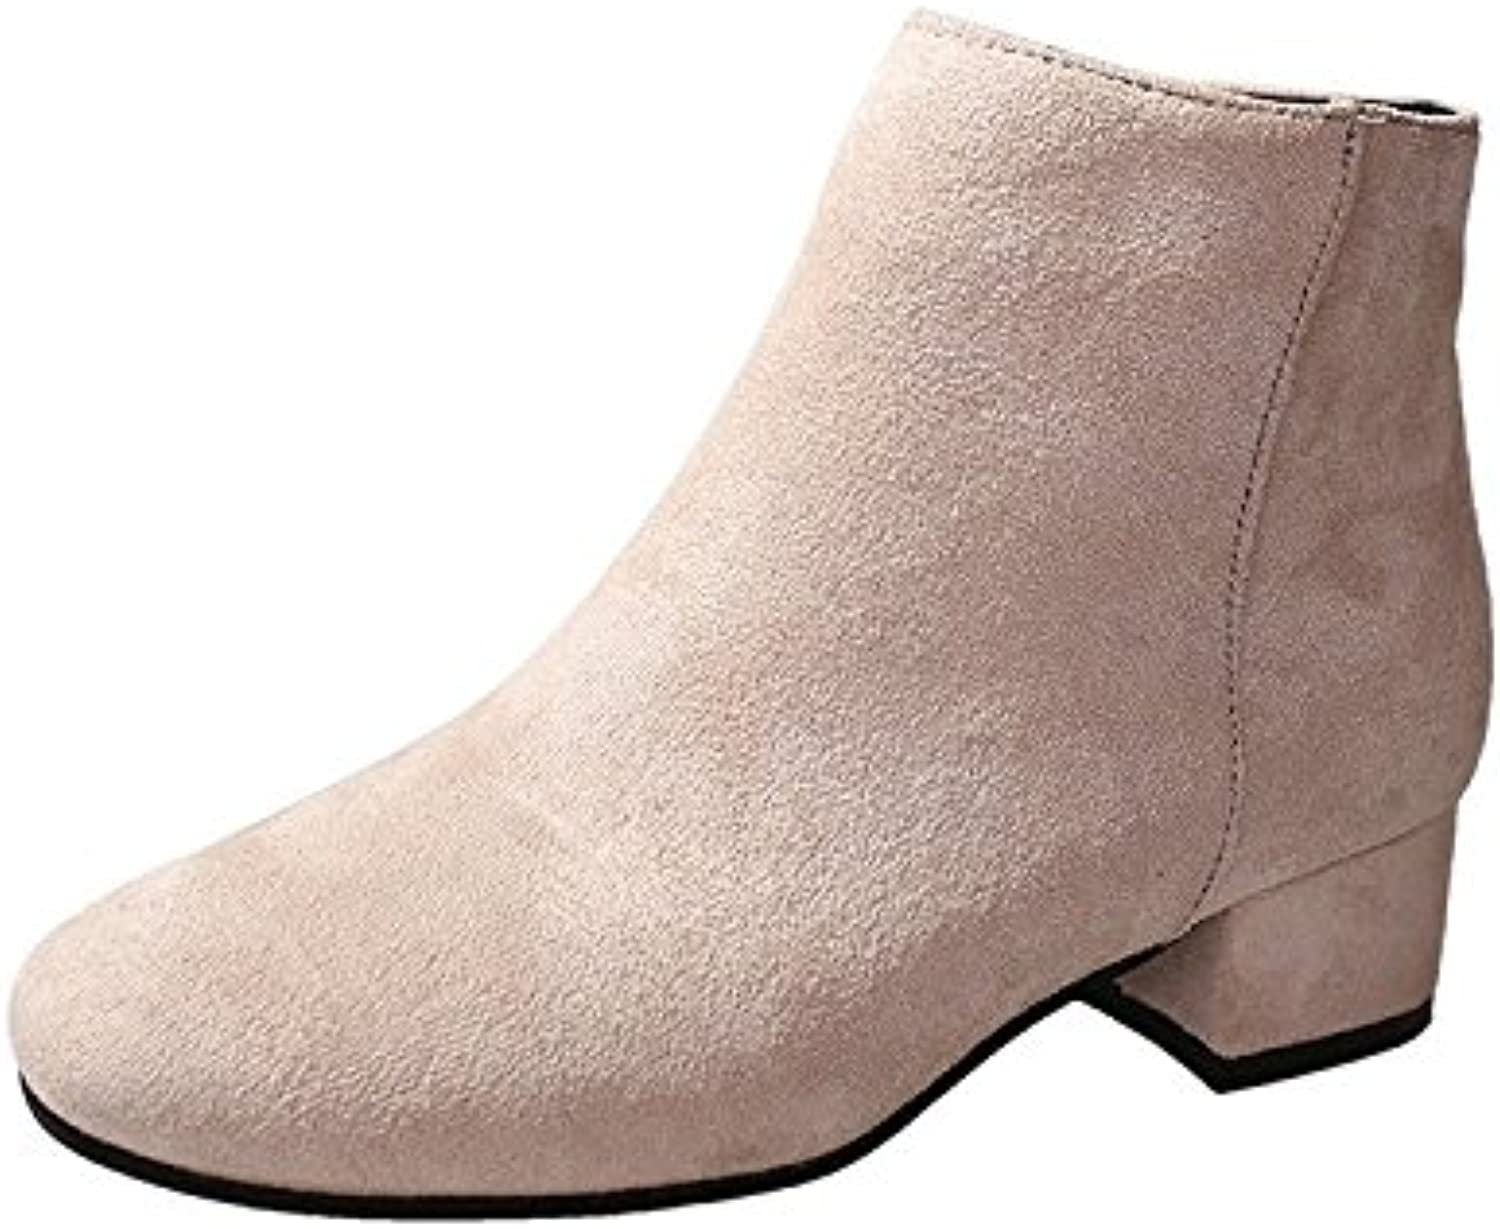 WYMBS Women's shoes Mid Heel Rough with Simple Suede Short Boots Martin Boots,white1,35